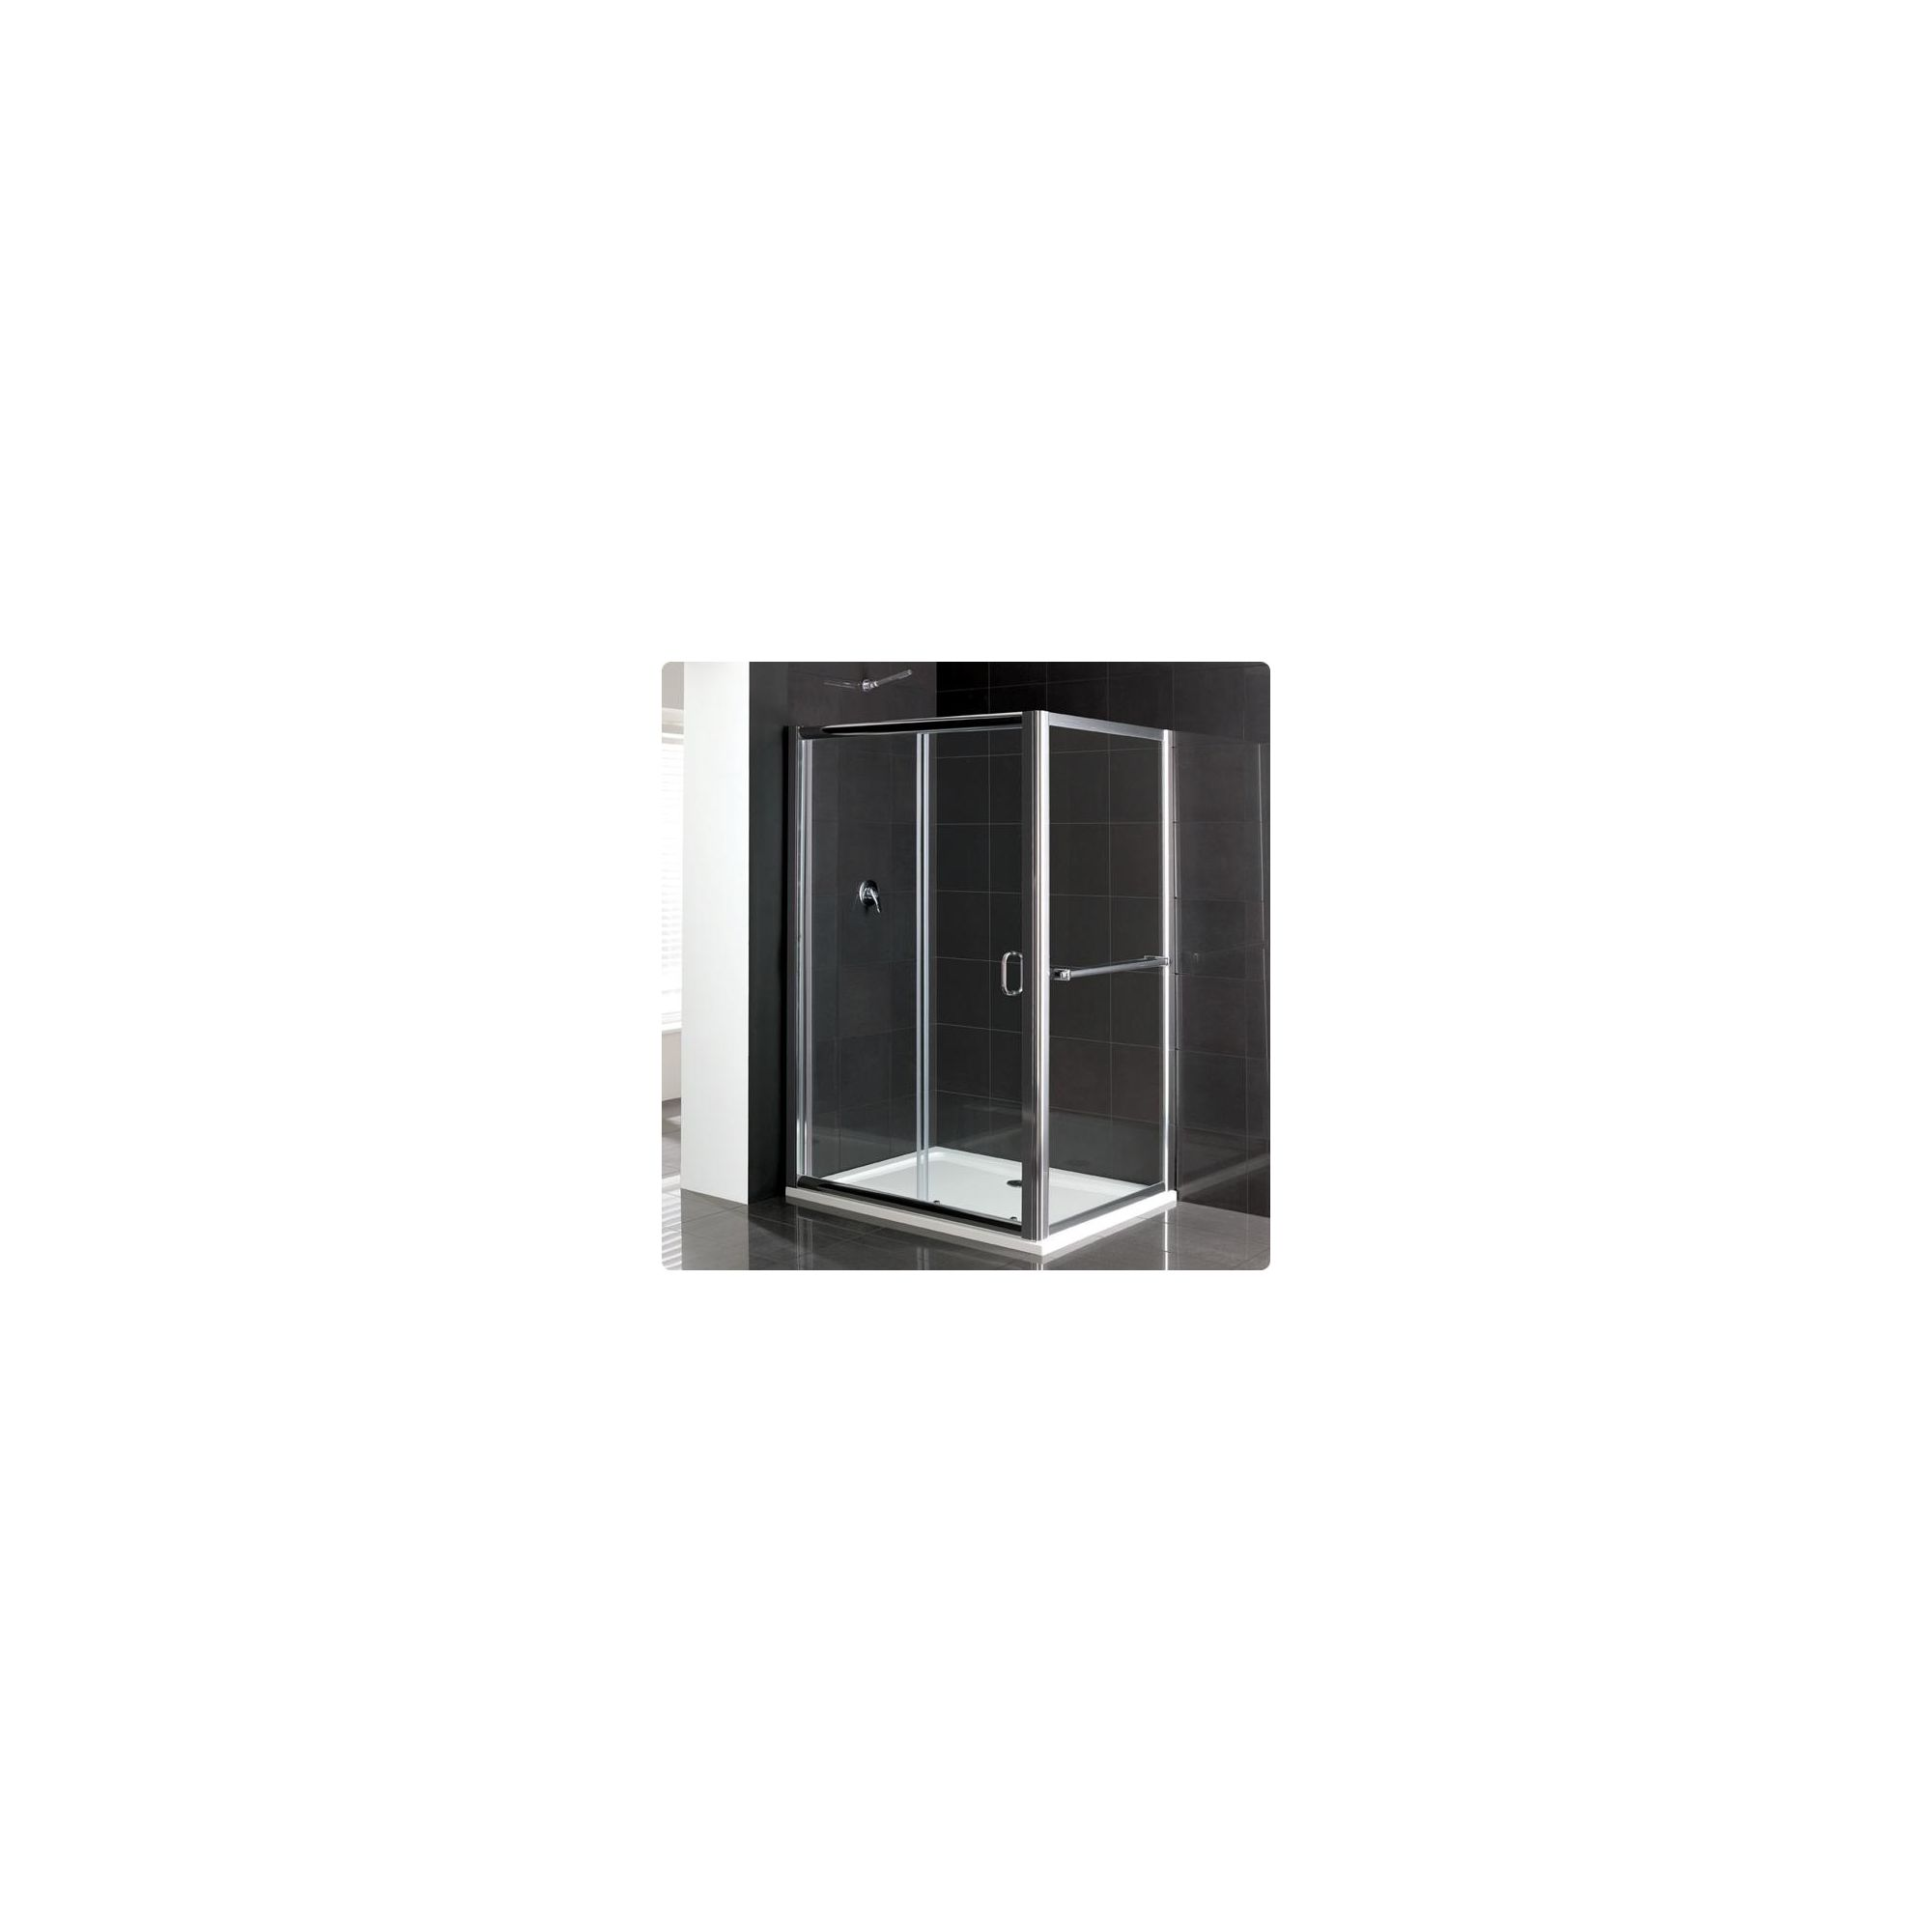 Duchy Elite Silver Sliding Door Shower Enclosure with Towel Rail, 1600mm x 760mm, Standard Tray, 6mm Glass at Tescos Direct